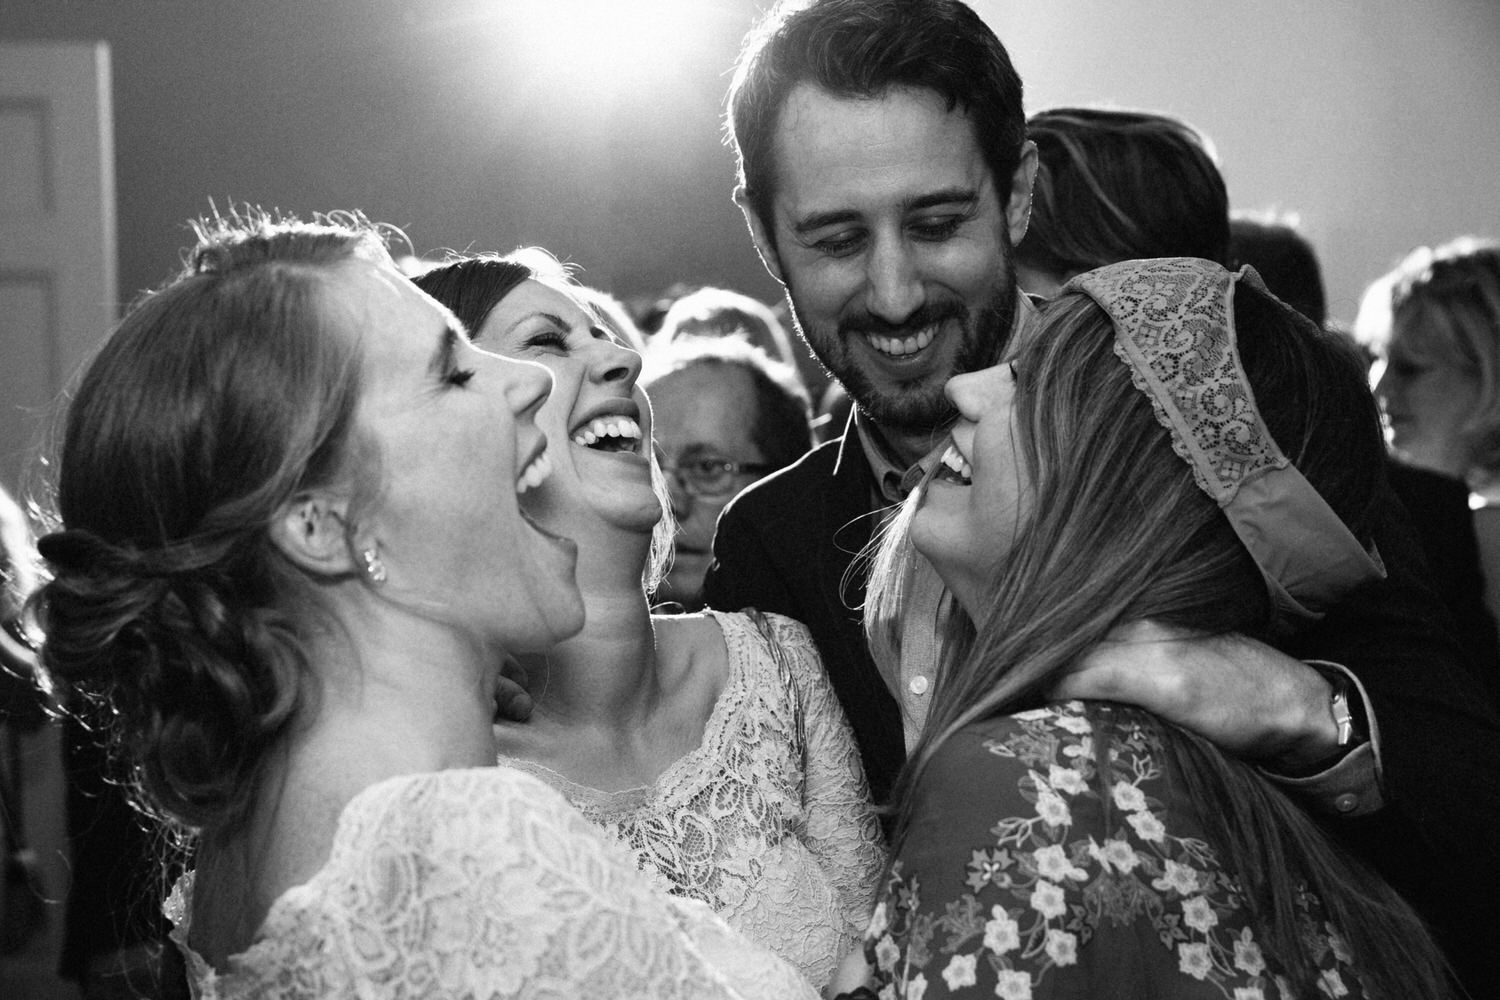 wedding guests laugh on the dance floor in this black and white image